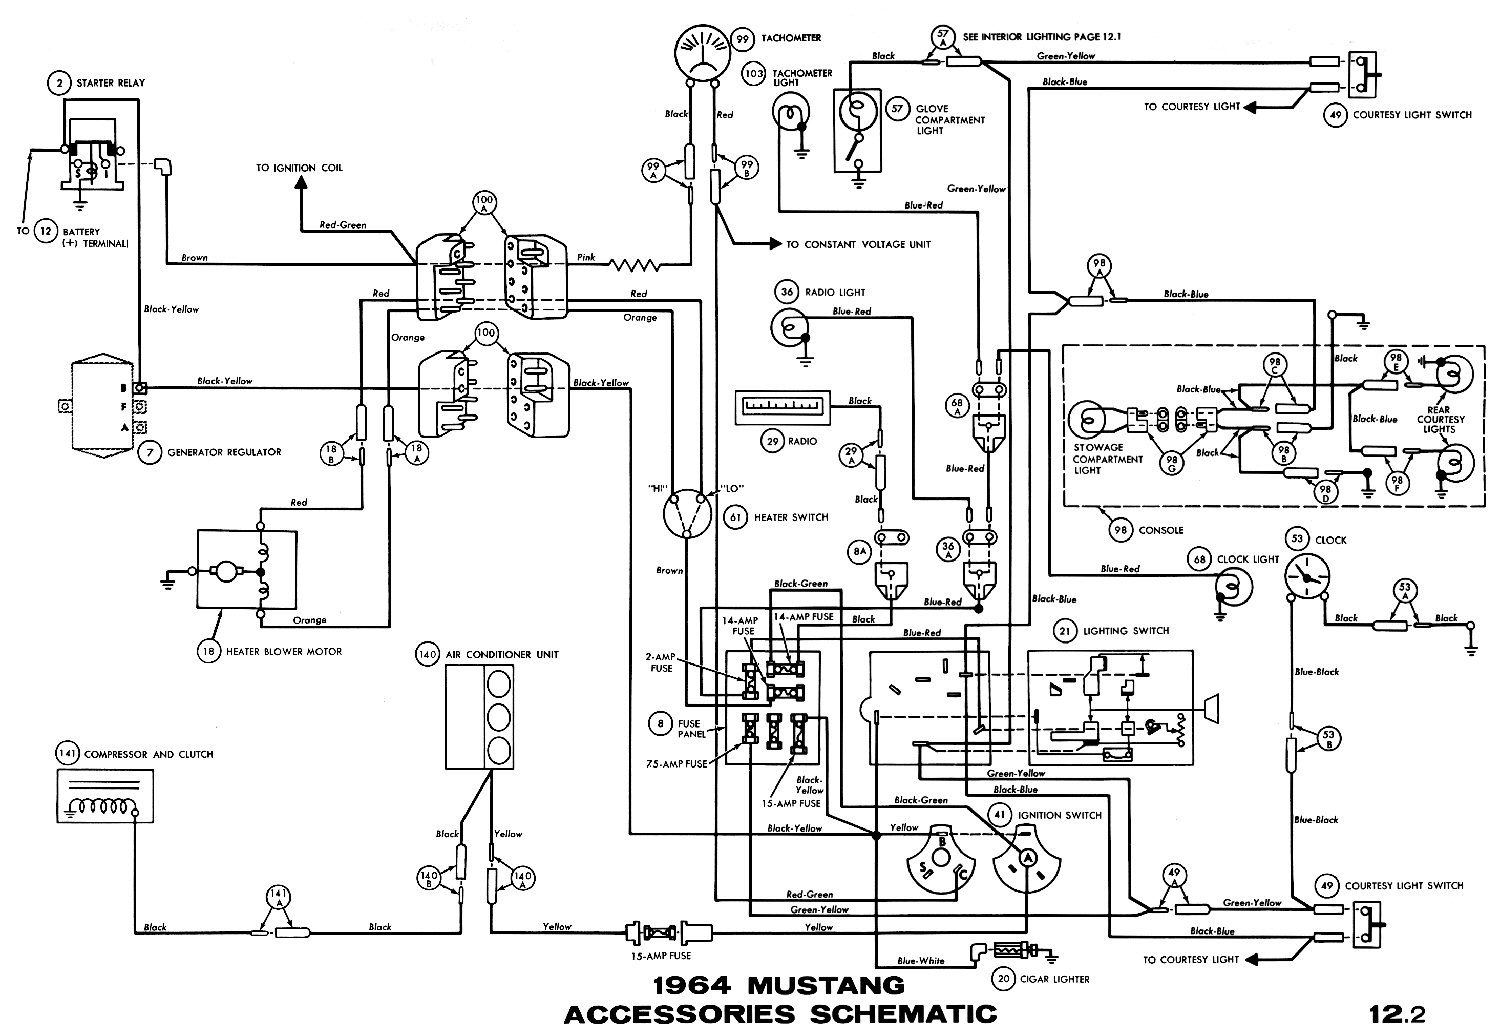 [DIAGRAM] 1970 Ford Mustang Steering Column Wiring Diagram